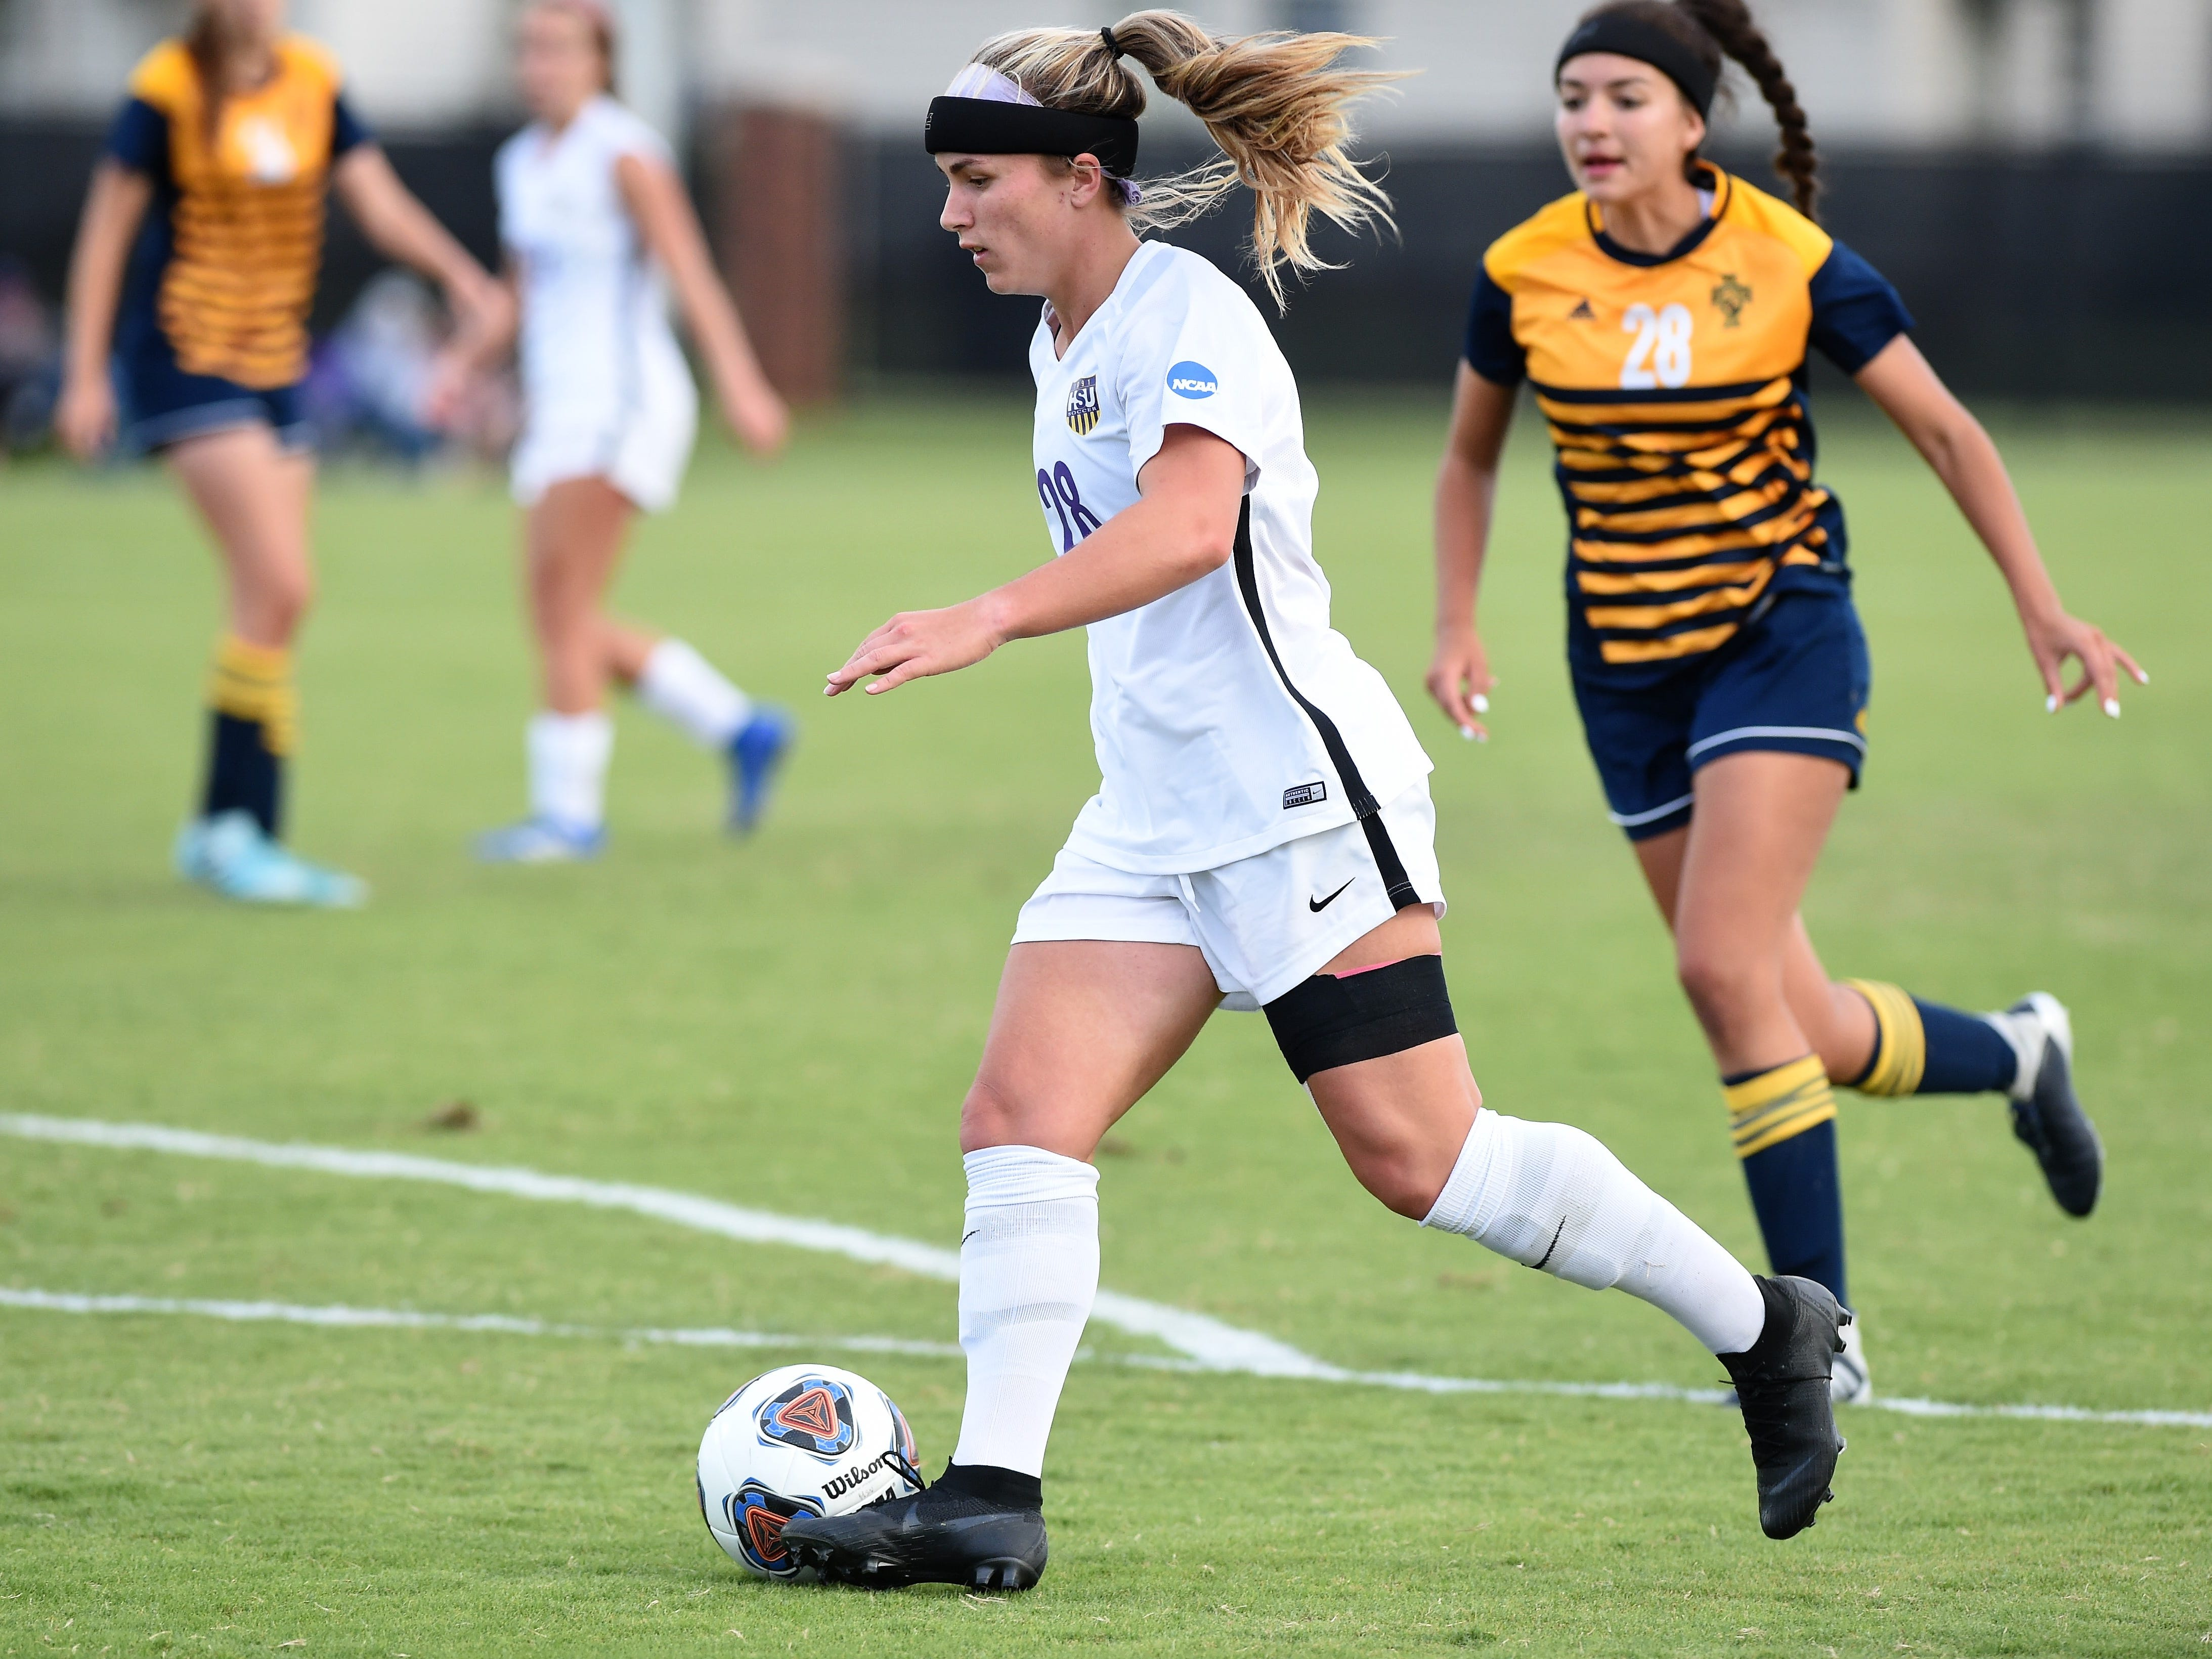 Hardin-Simmons' Kenne Kessler (28) carries the ball into the box aginst Howard Payne at the HSU Soccer Complex on Thursday, Oct. 11, 2018. The Cowgirls won 4-1.